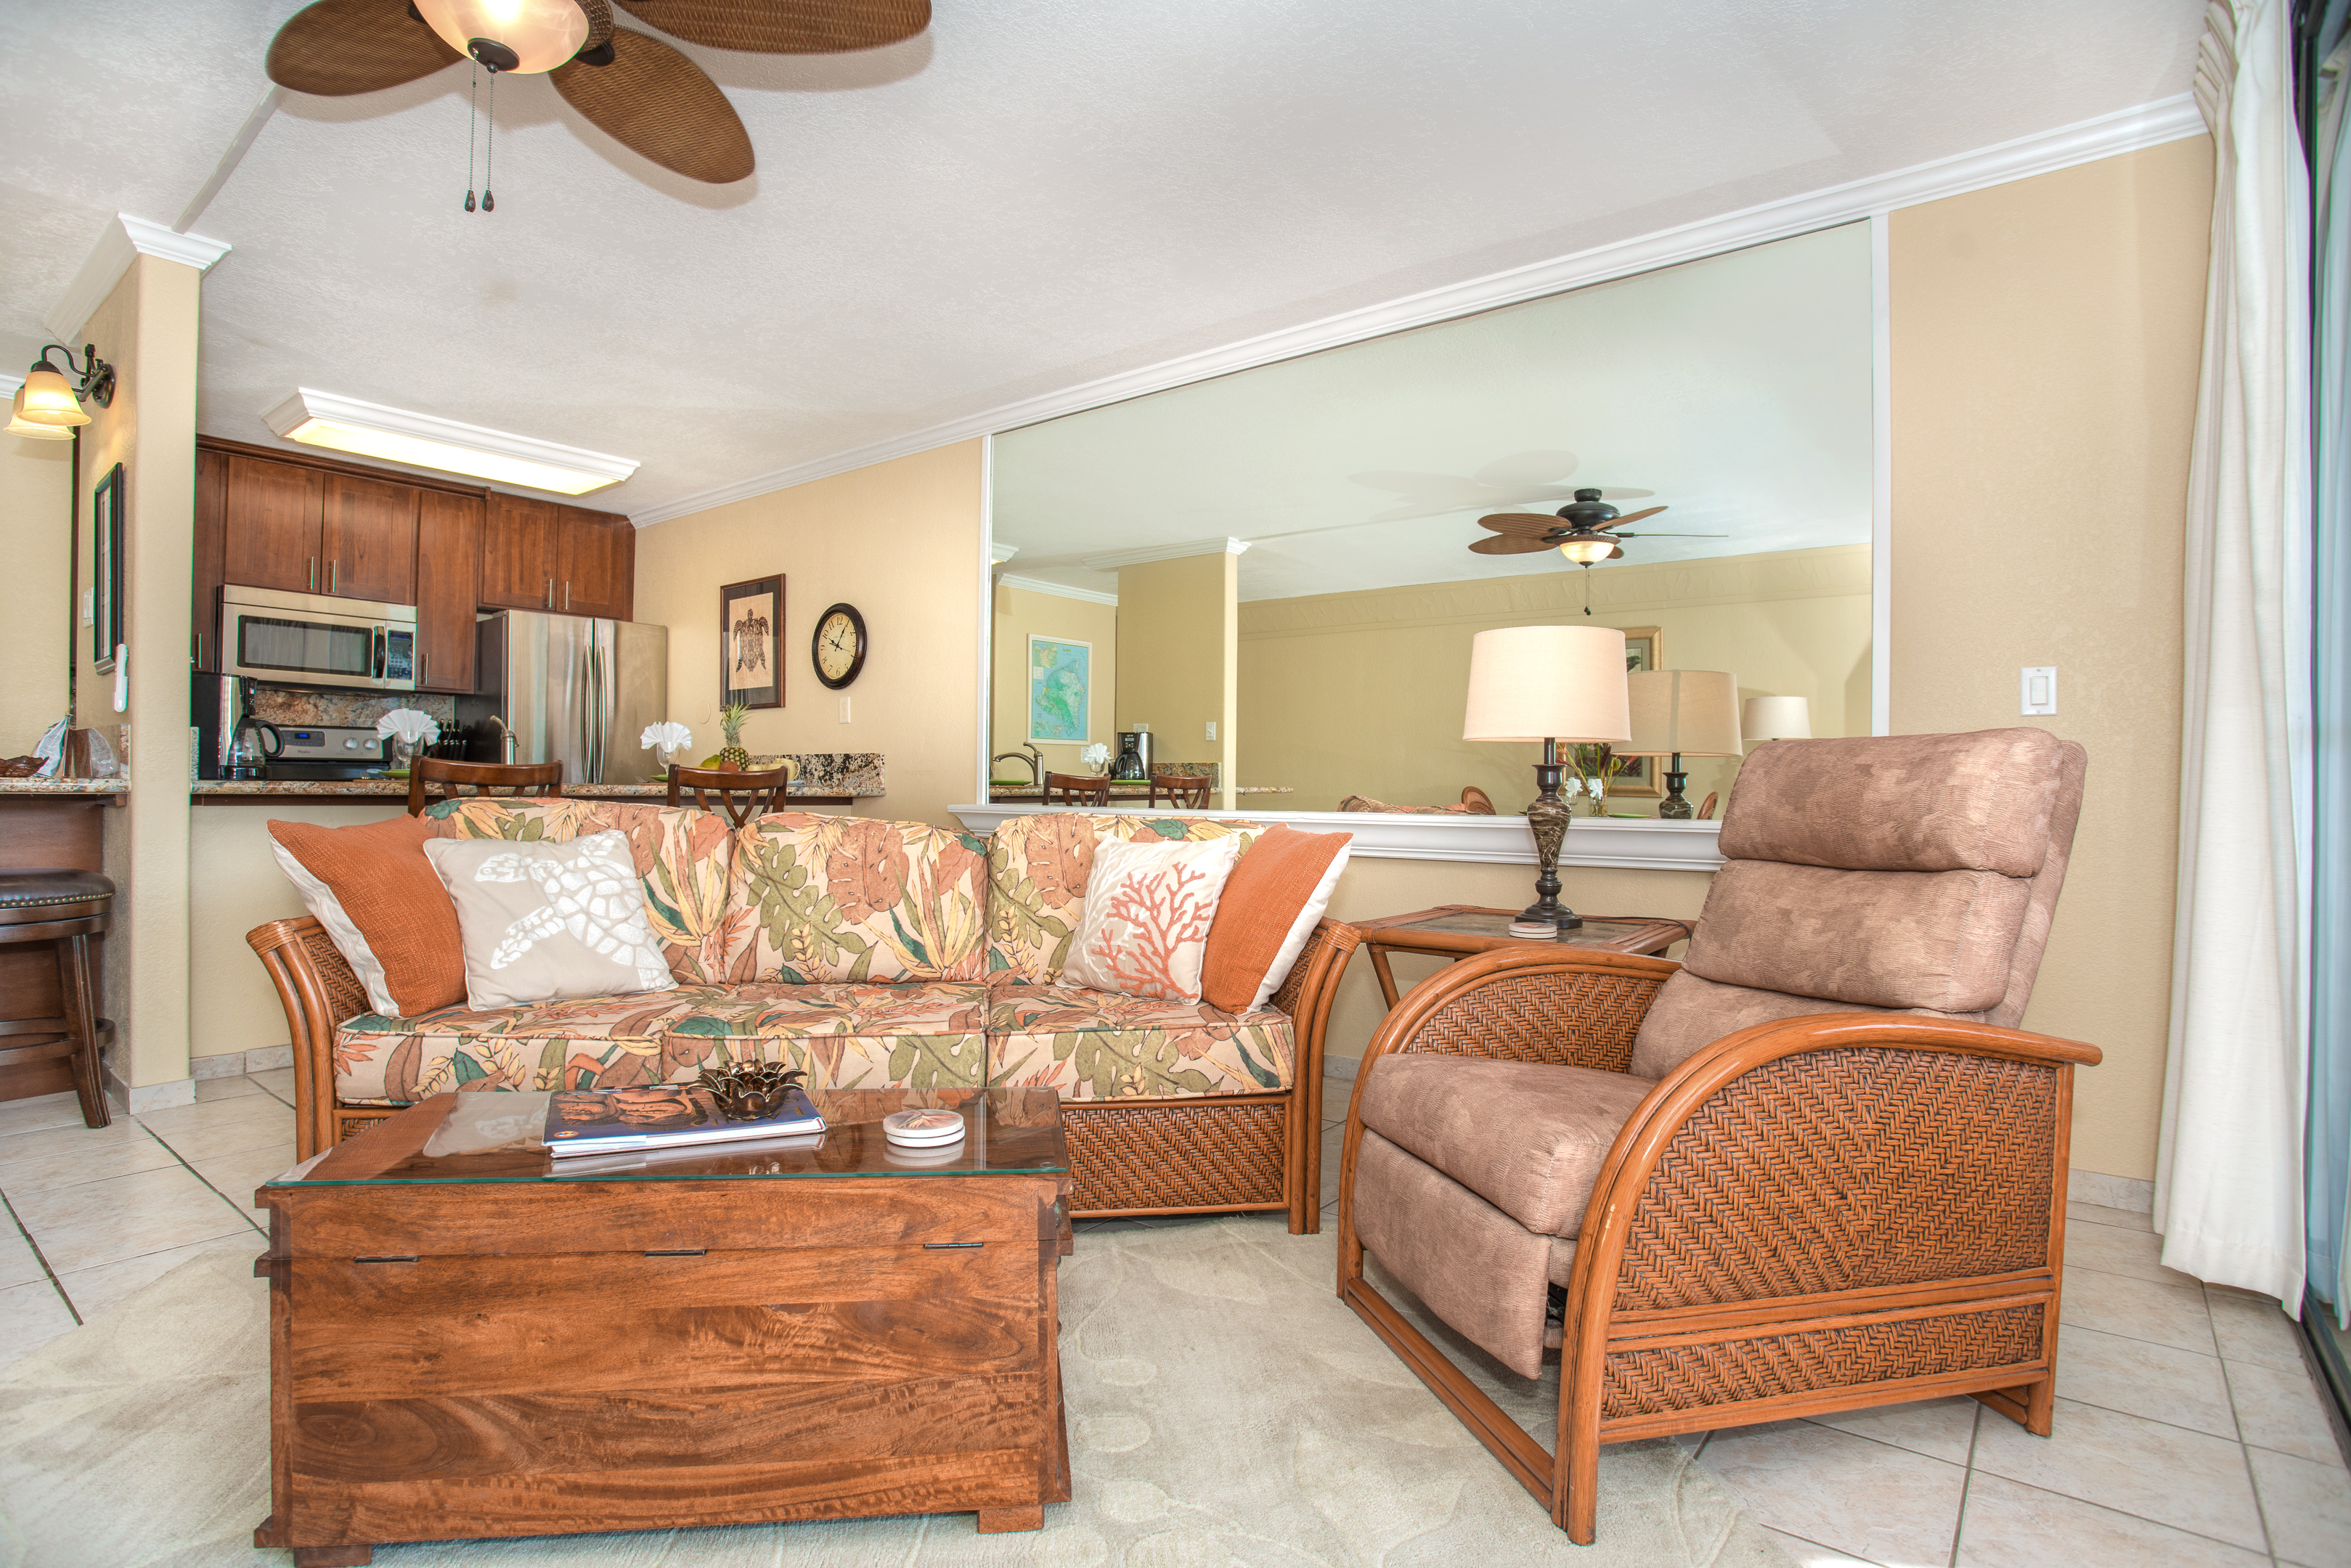 Living room with queen sofa bed and recliner.